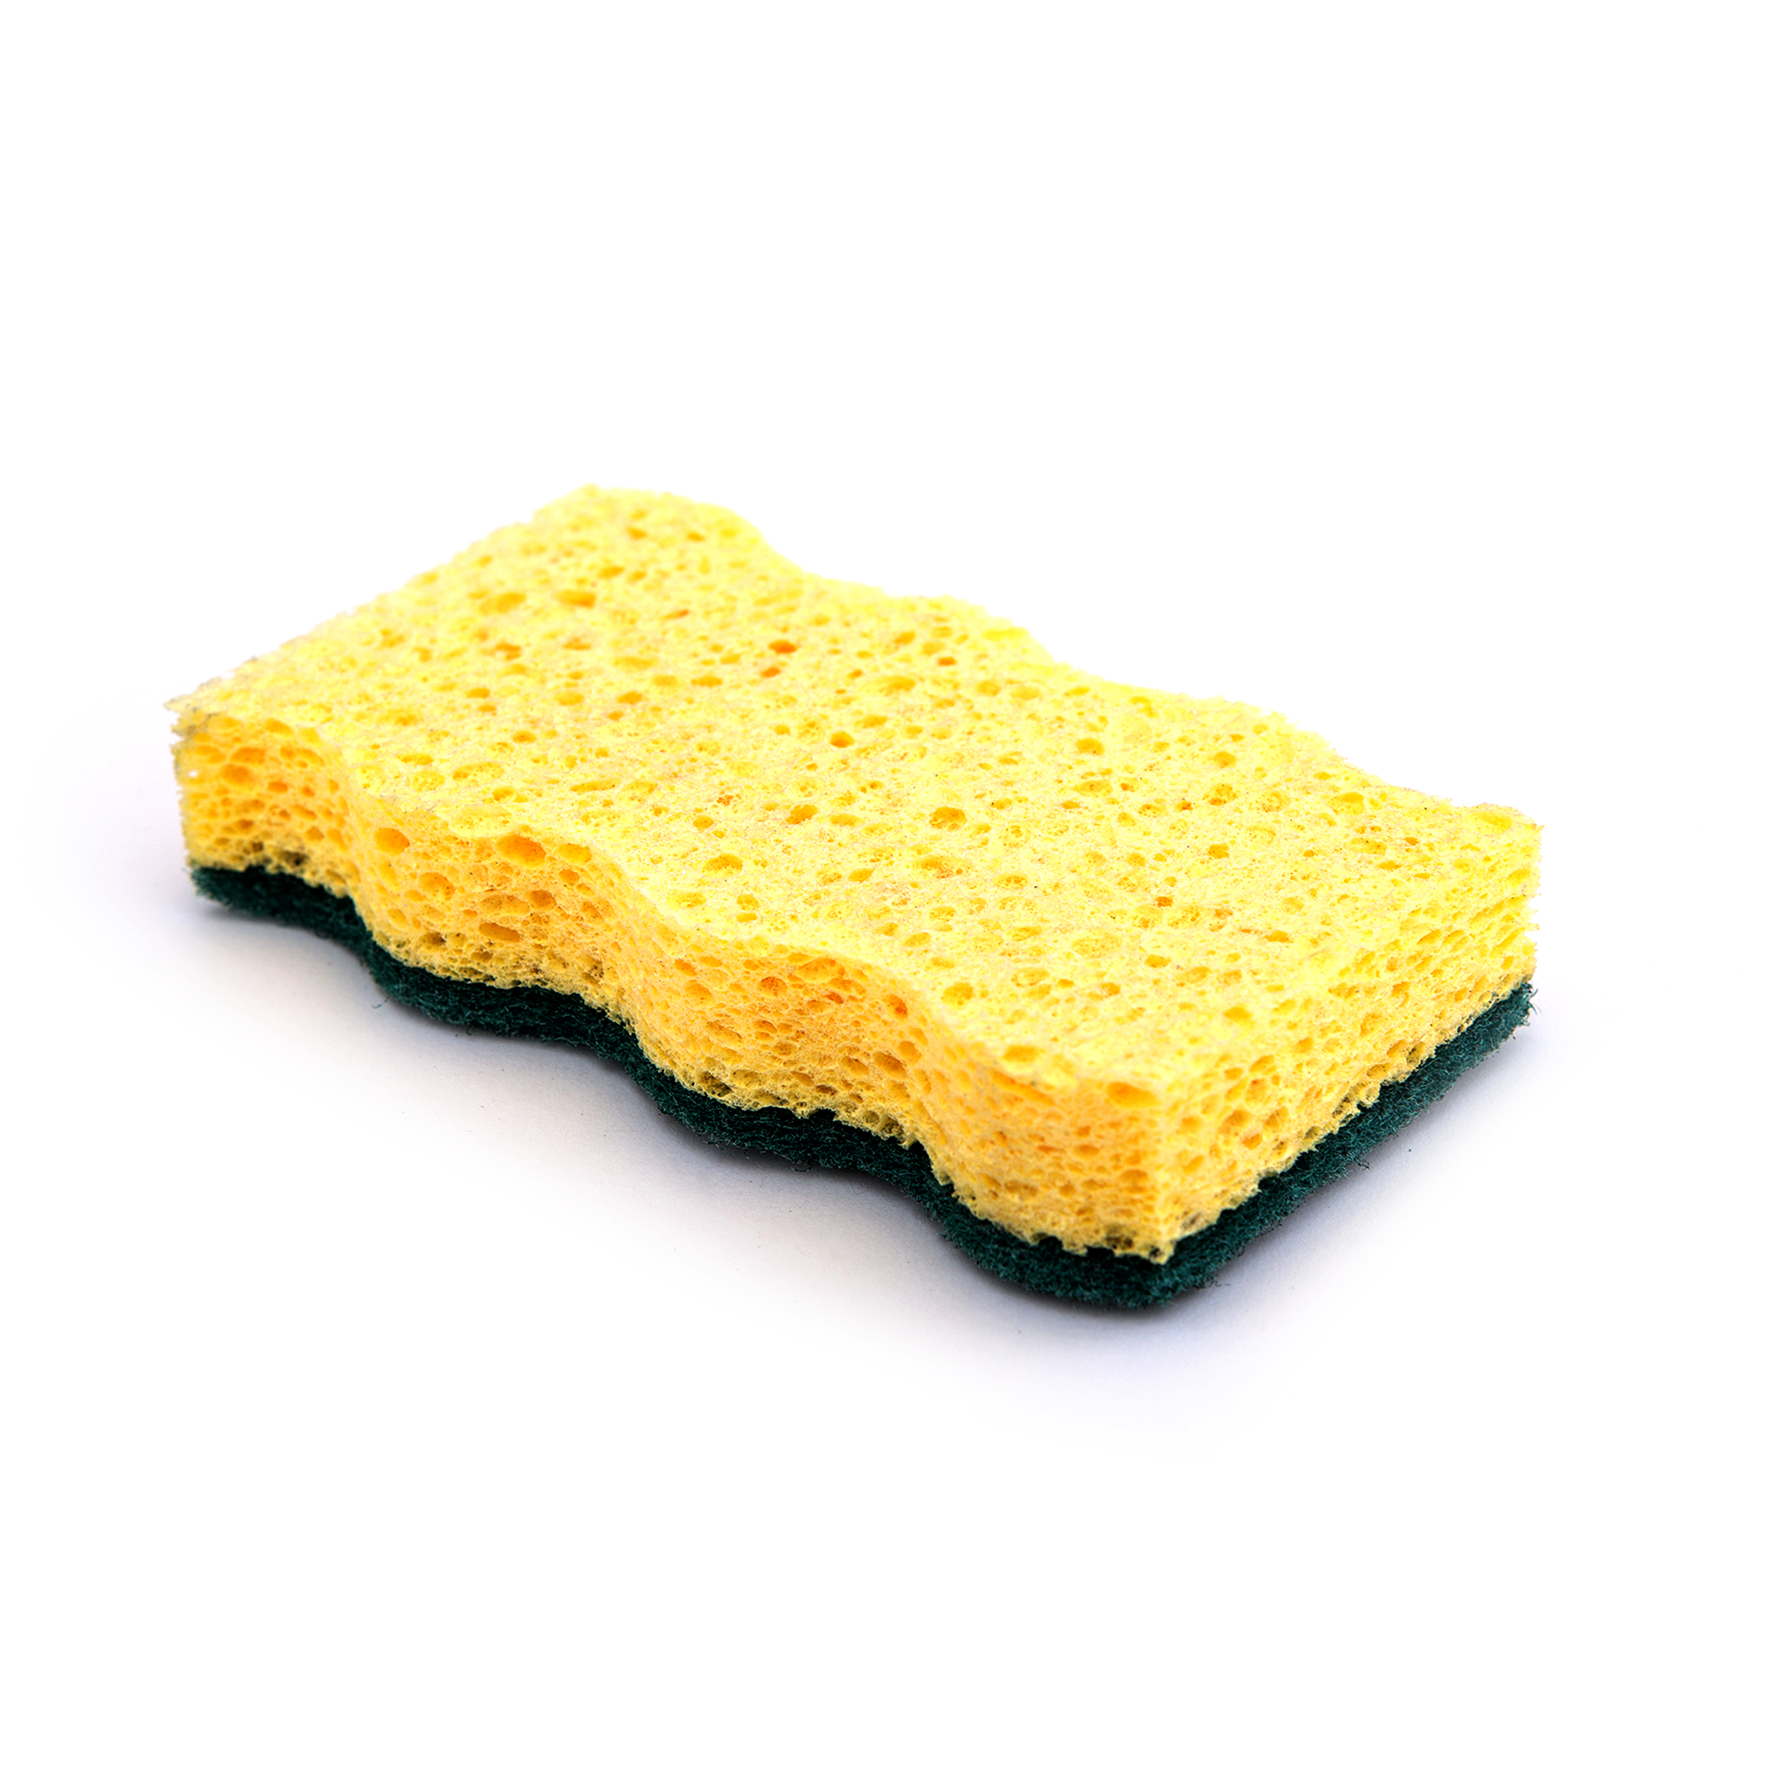 What is the principle of sponge cleaning?